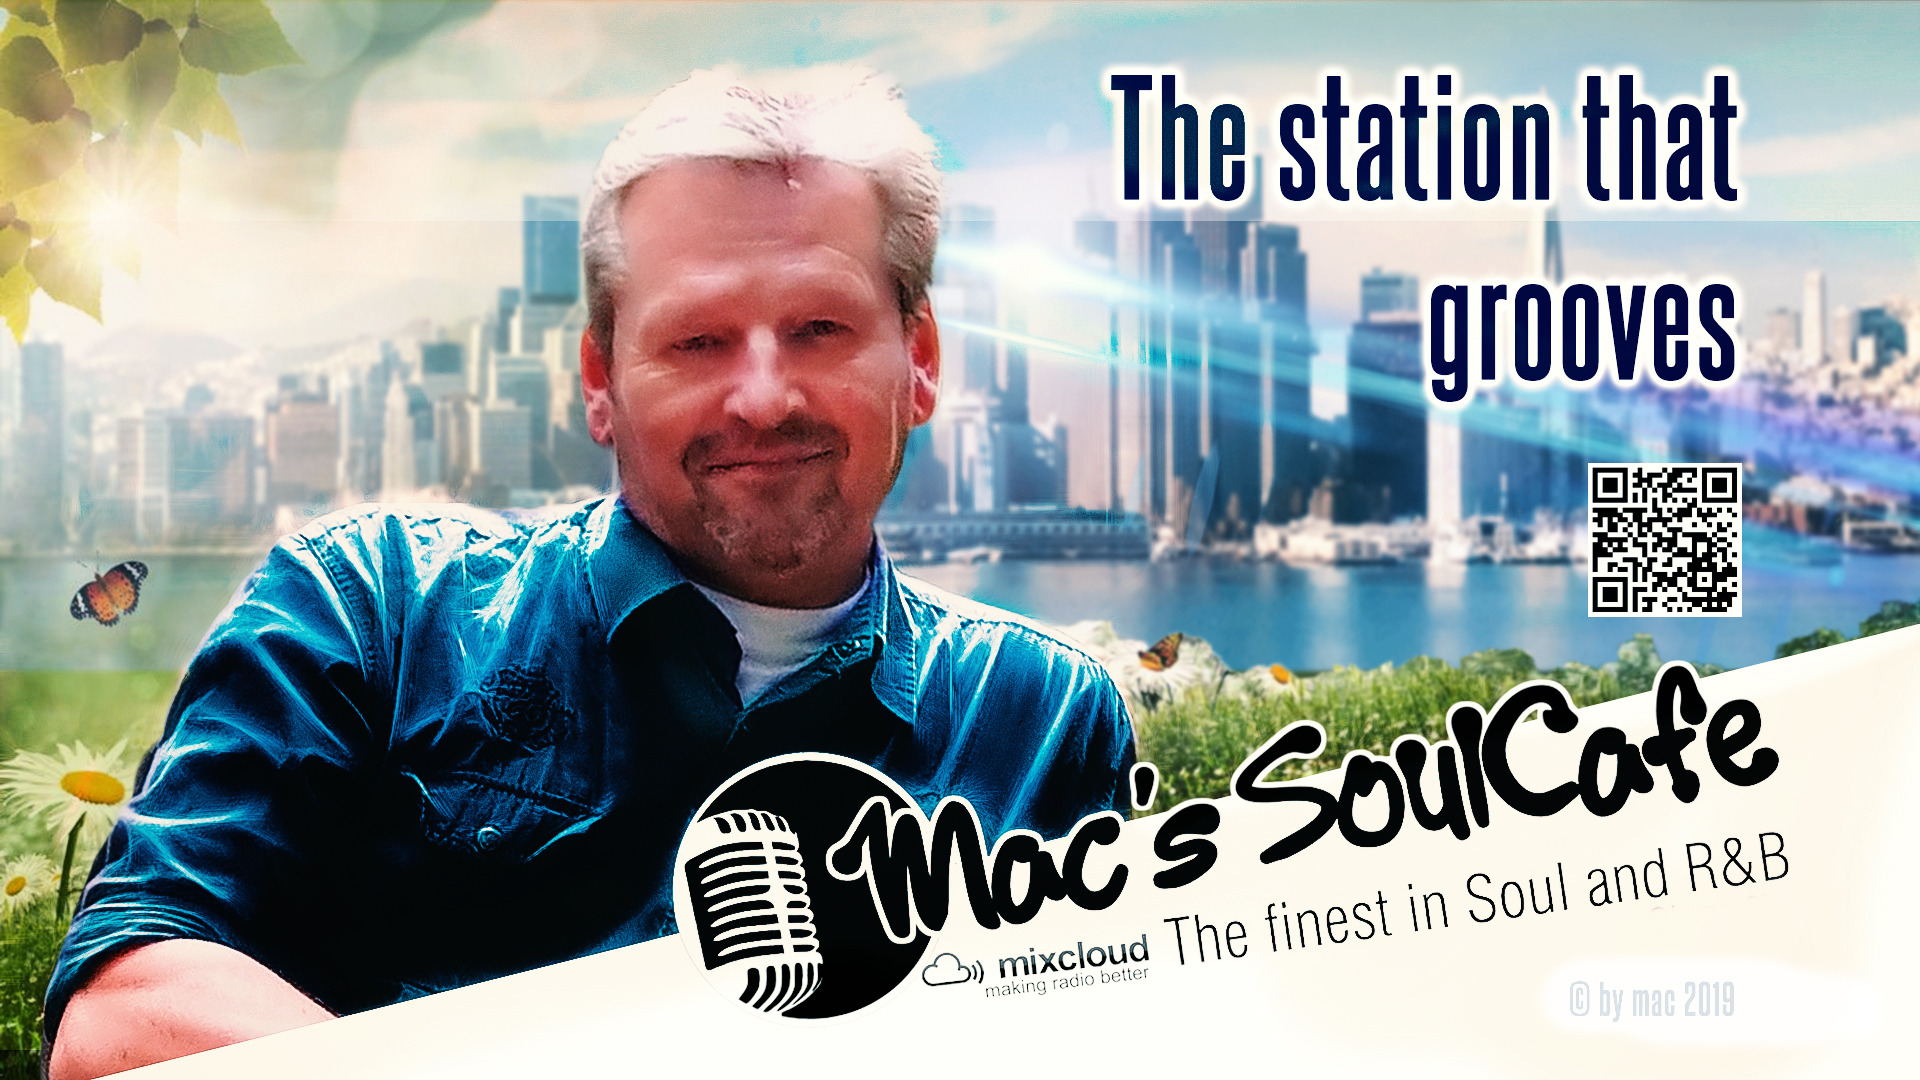 Mac's SoulCafe, the station-that grooves